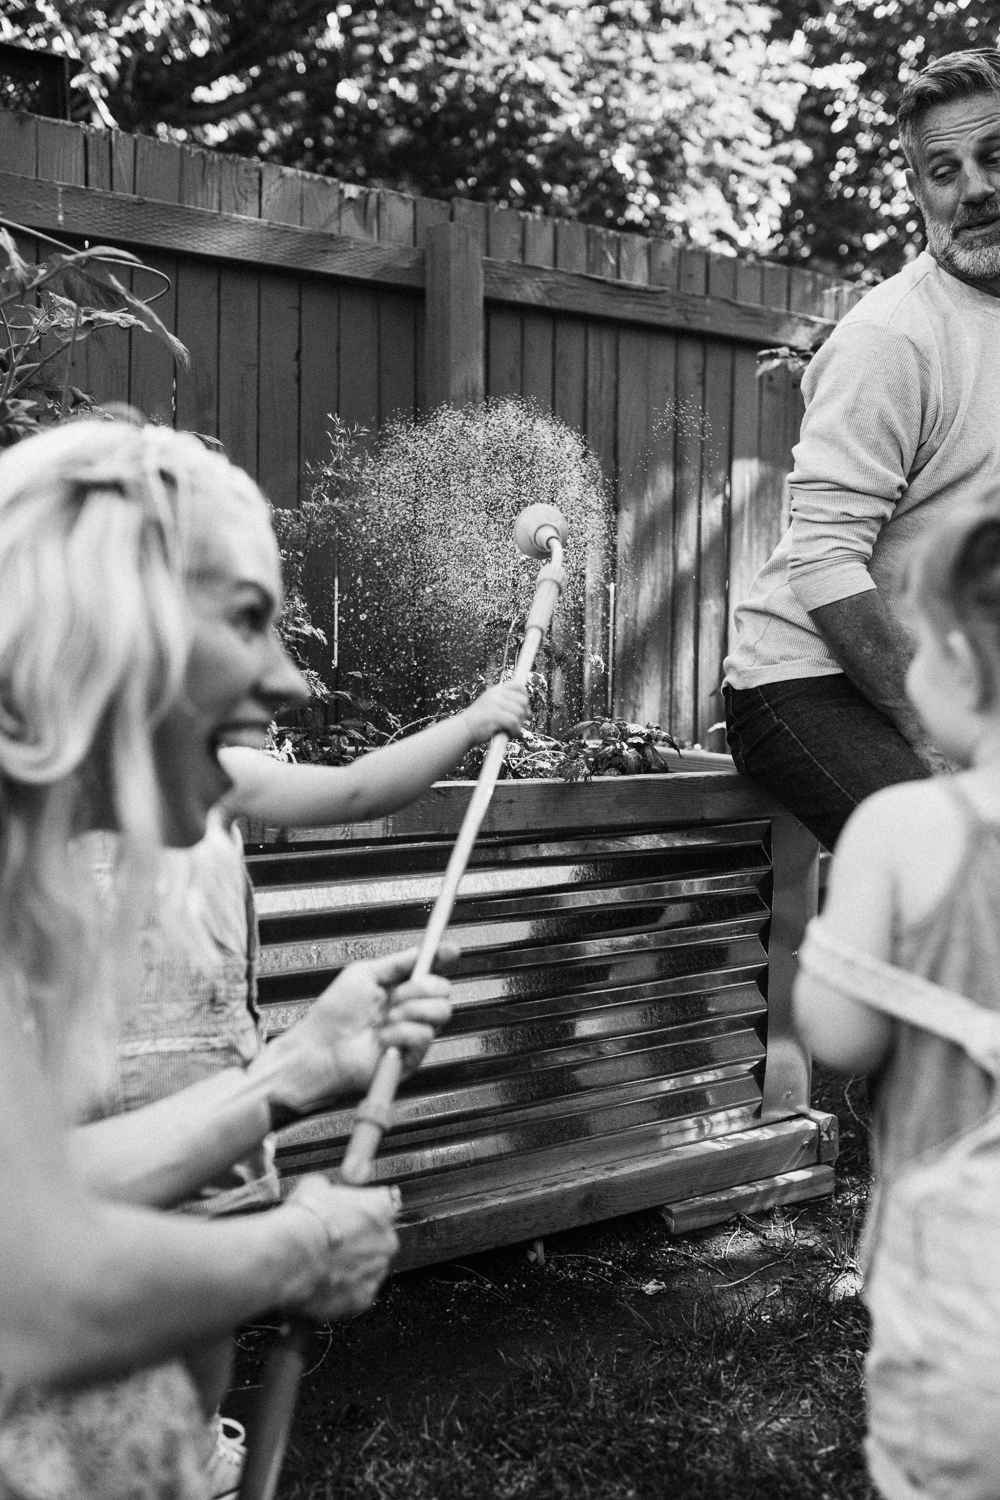 candid-photo-of-family-in-garden-at-home-during-lifestyle-photo-session-with-jen-fairchild-photography-salt-lake-city-utah